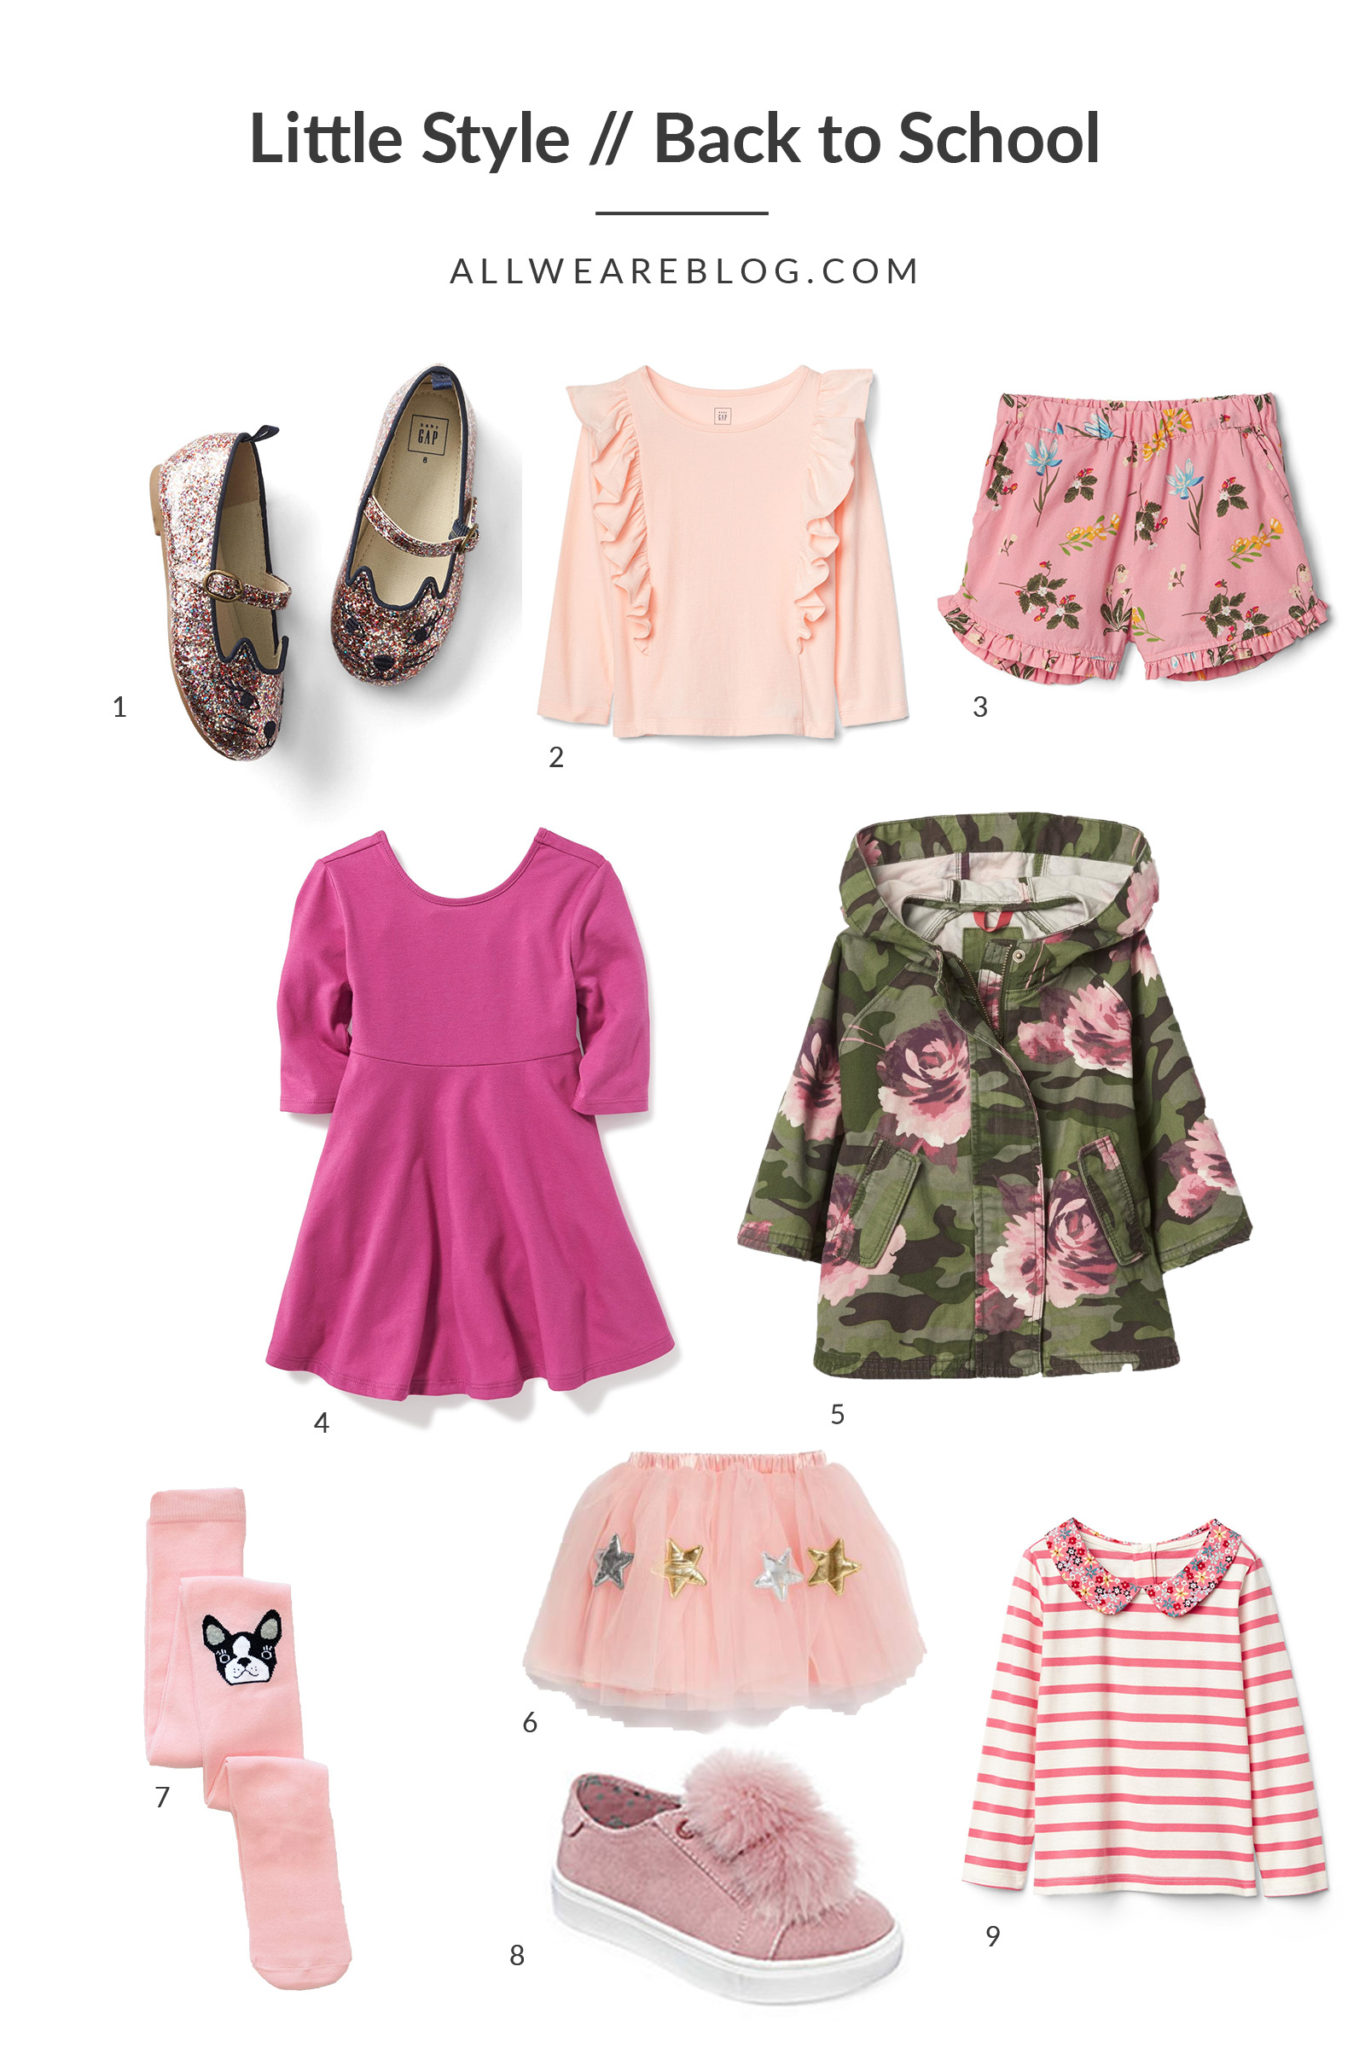 back to school style for toddler girls on allweareblog.com